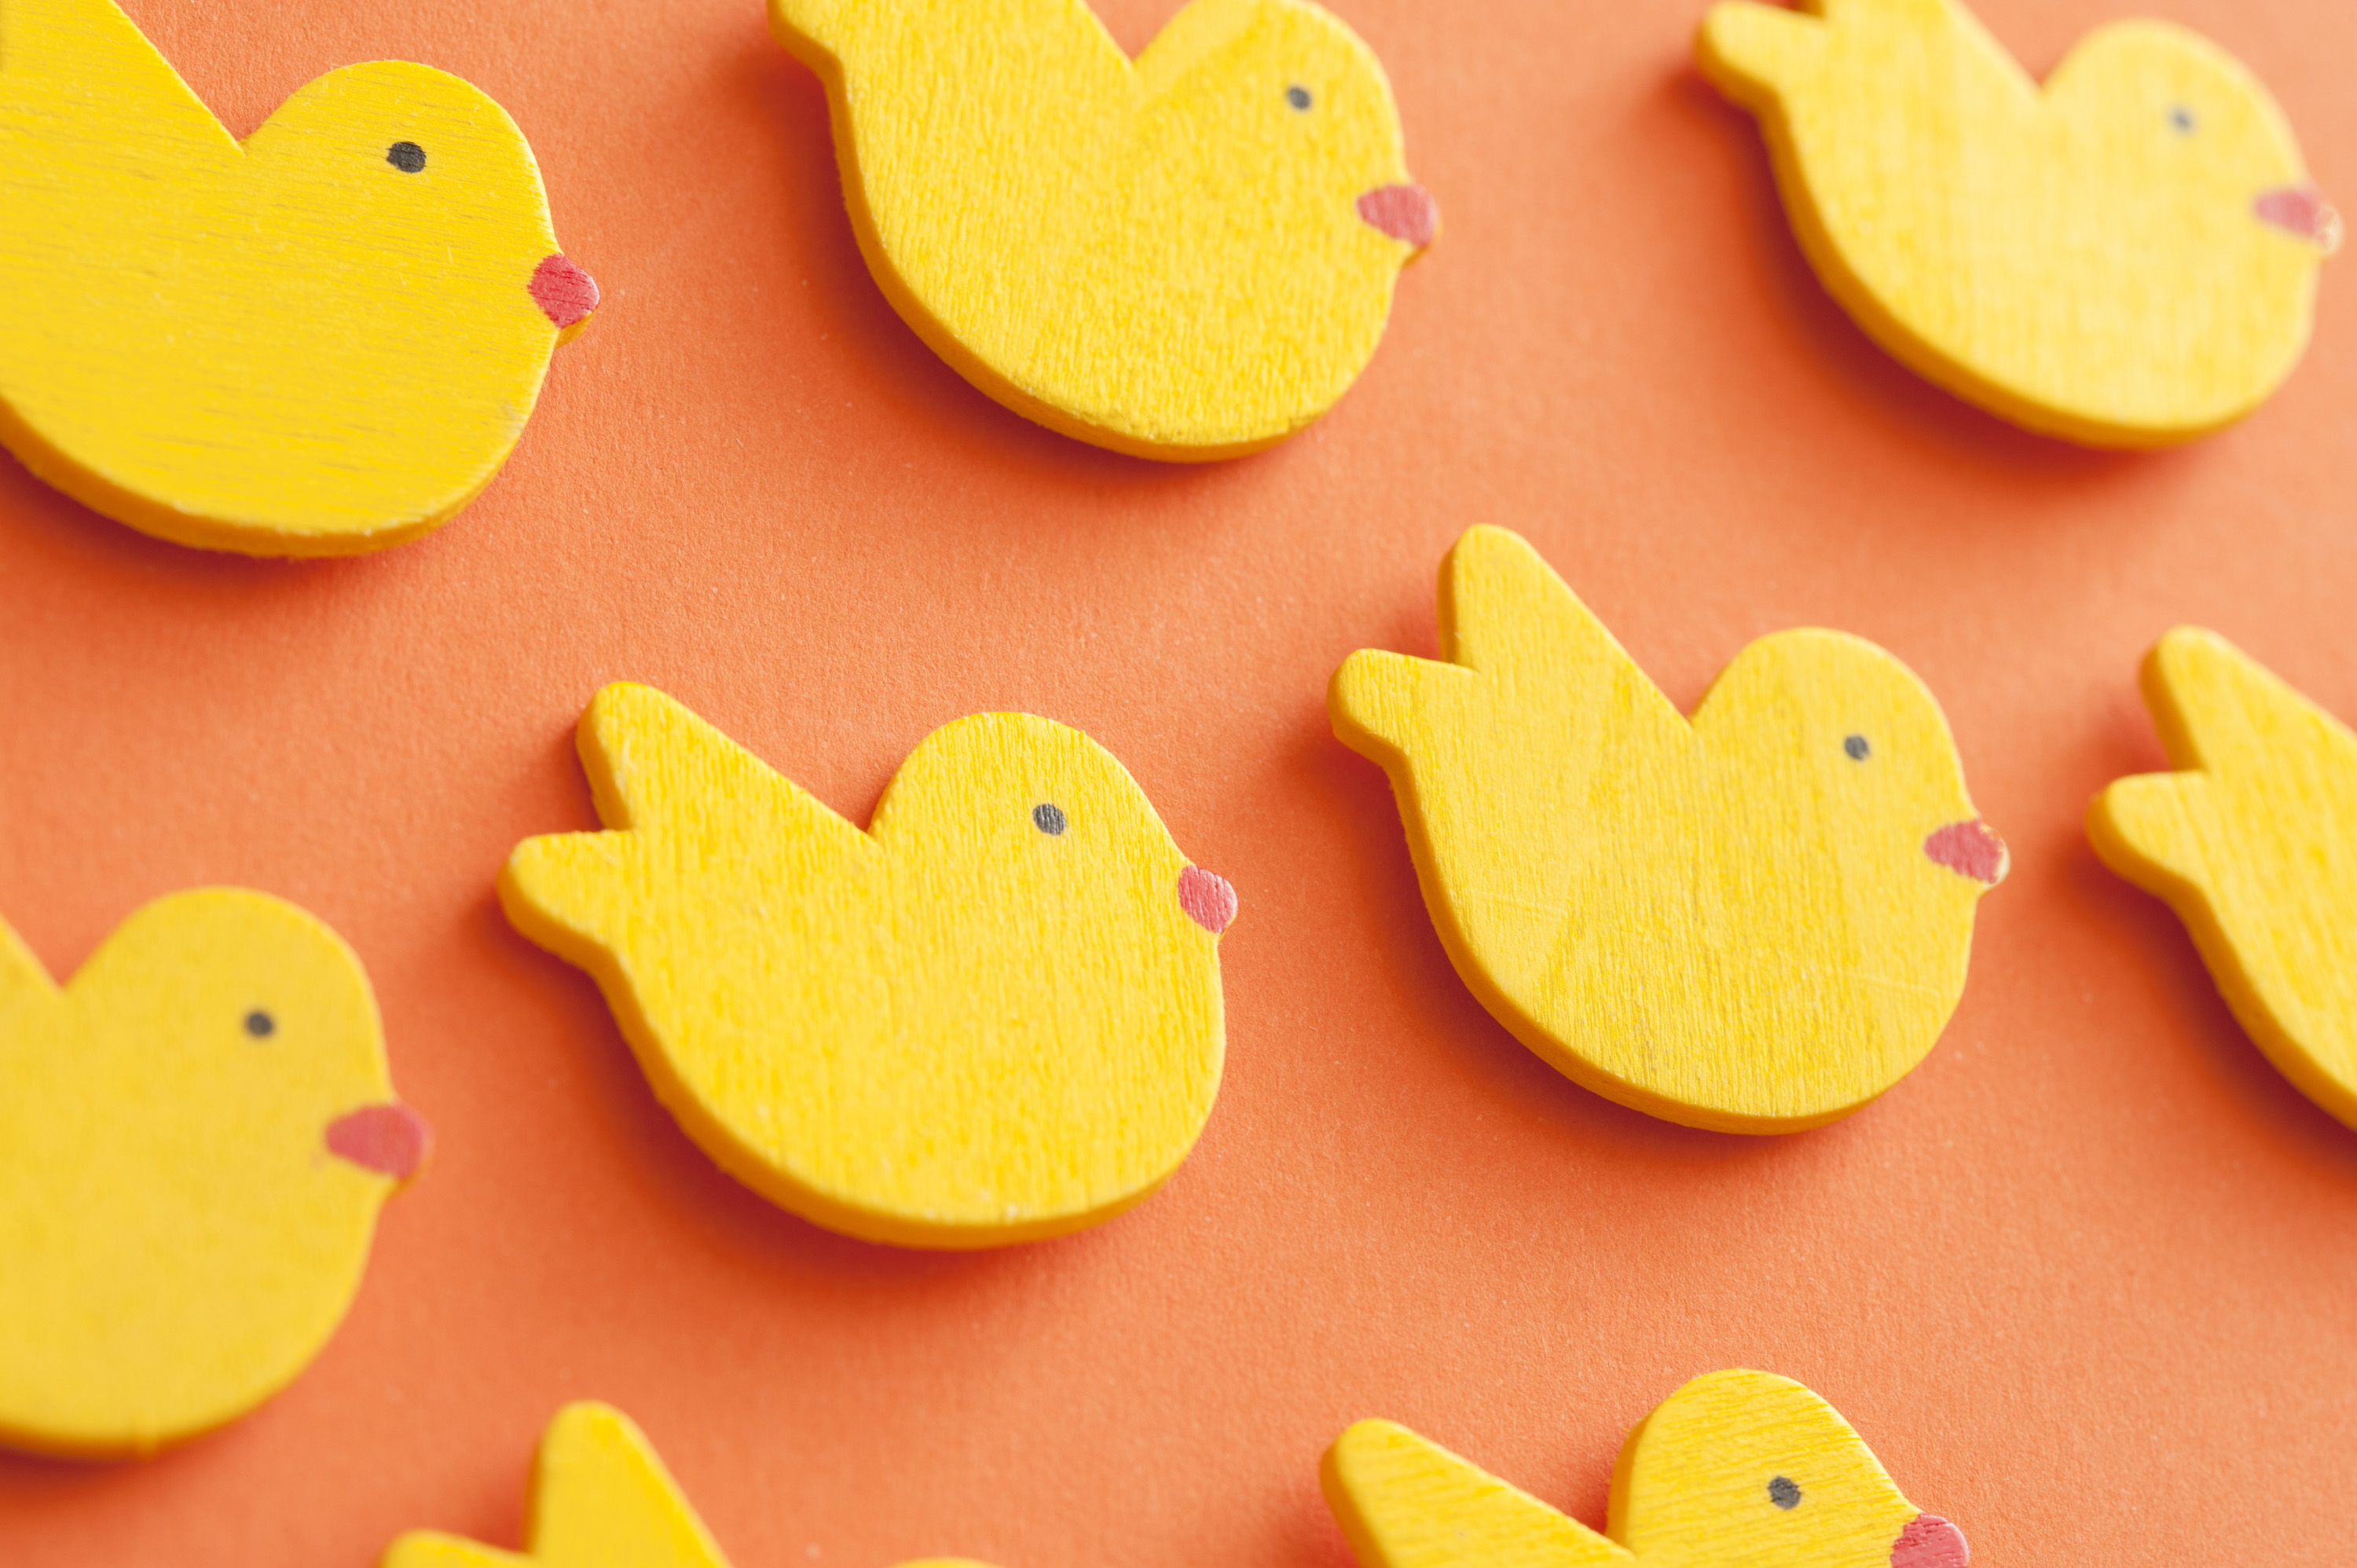 easter_duck_backdrop.jpg - Bright yellow Easter chick background on orange with colorful little chickens scattered randomly in an angled view